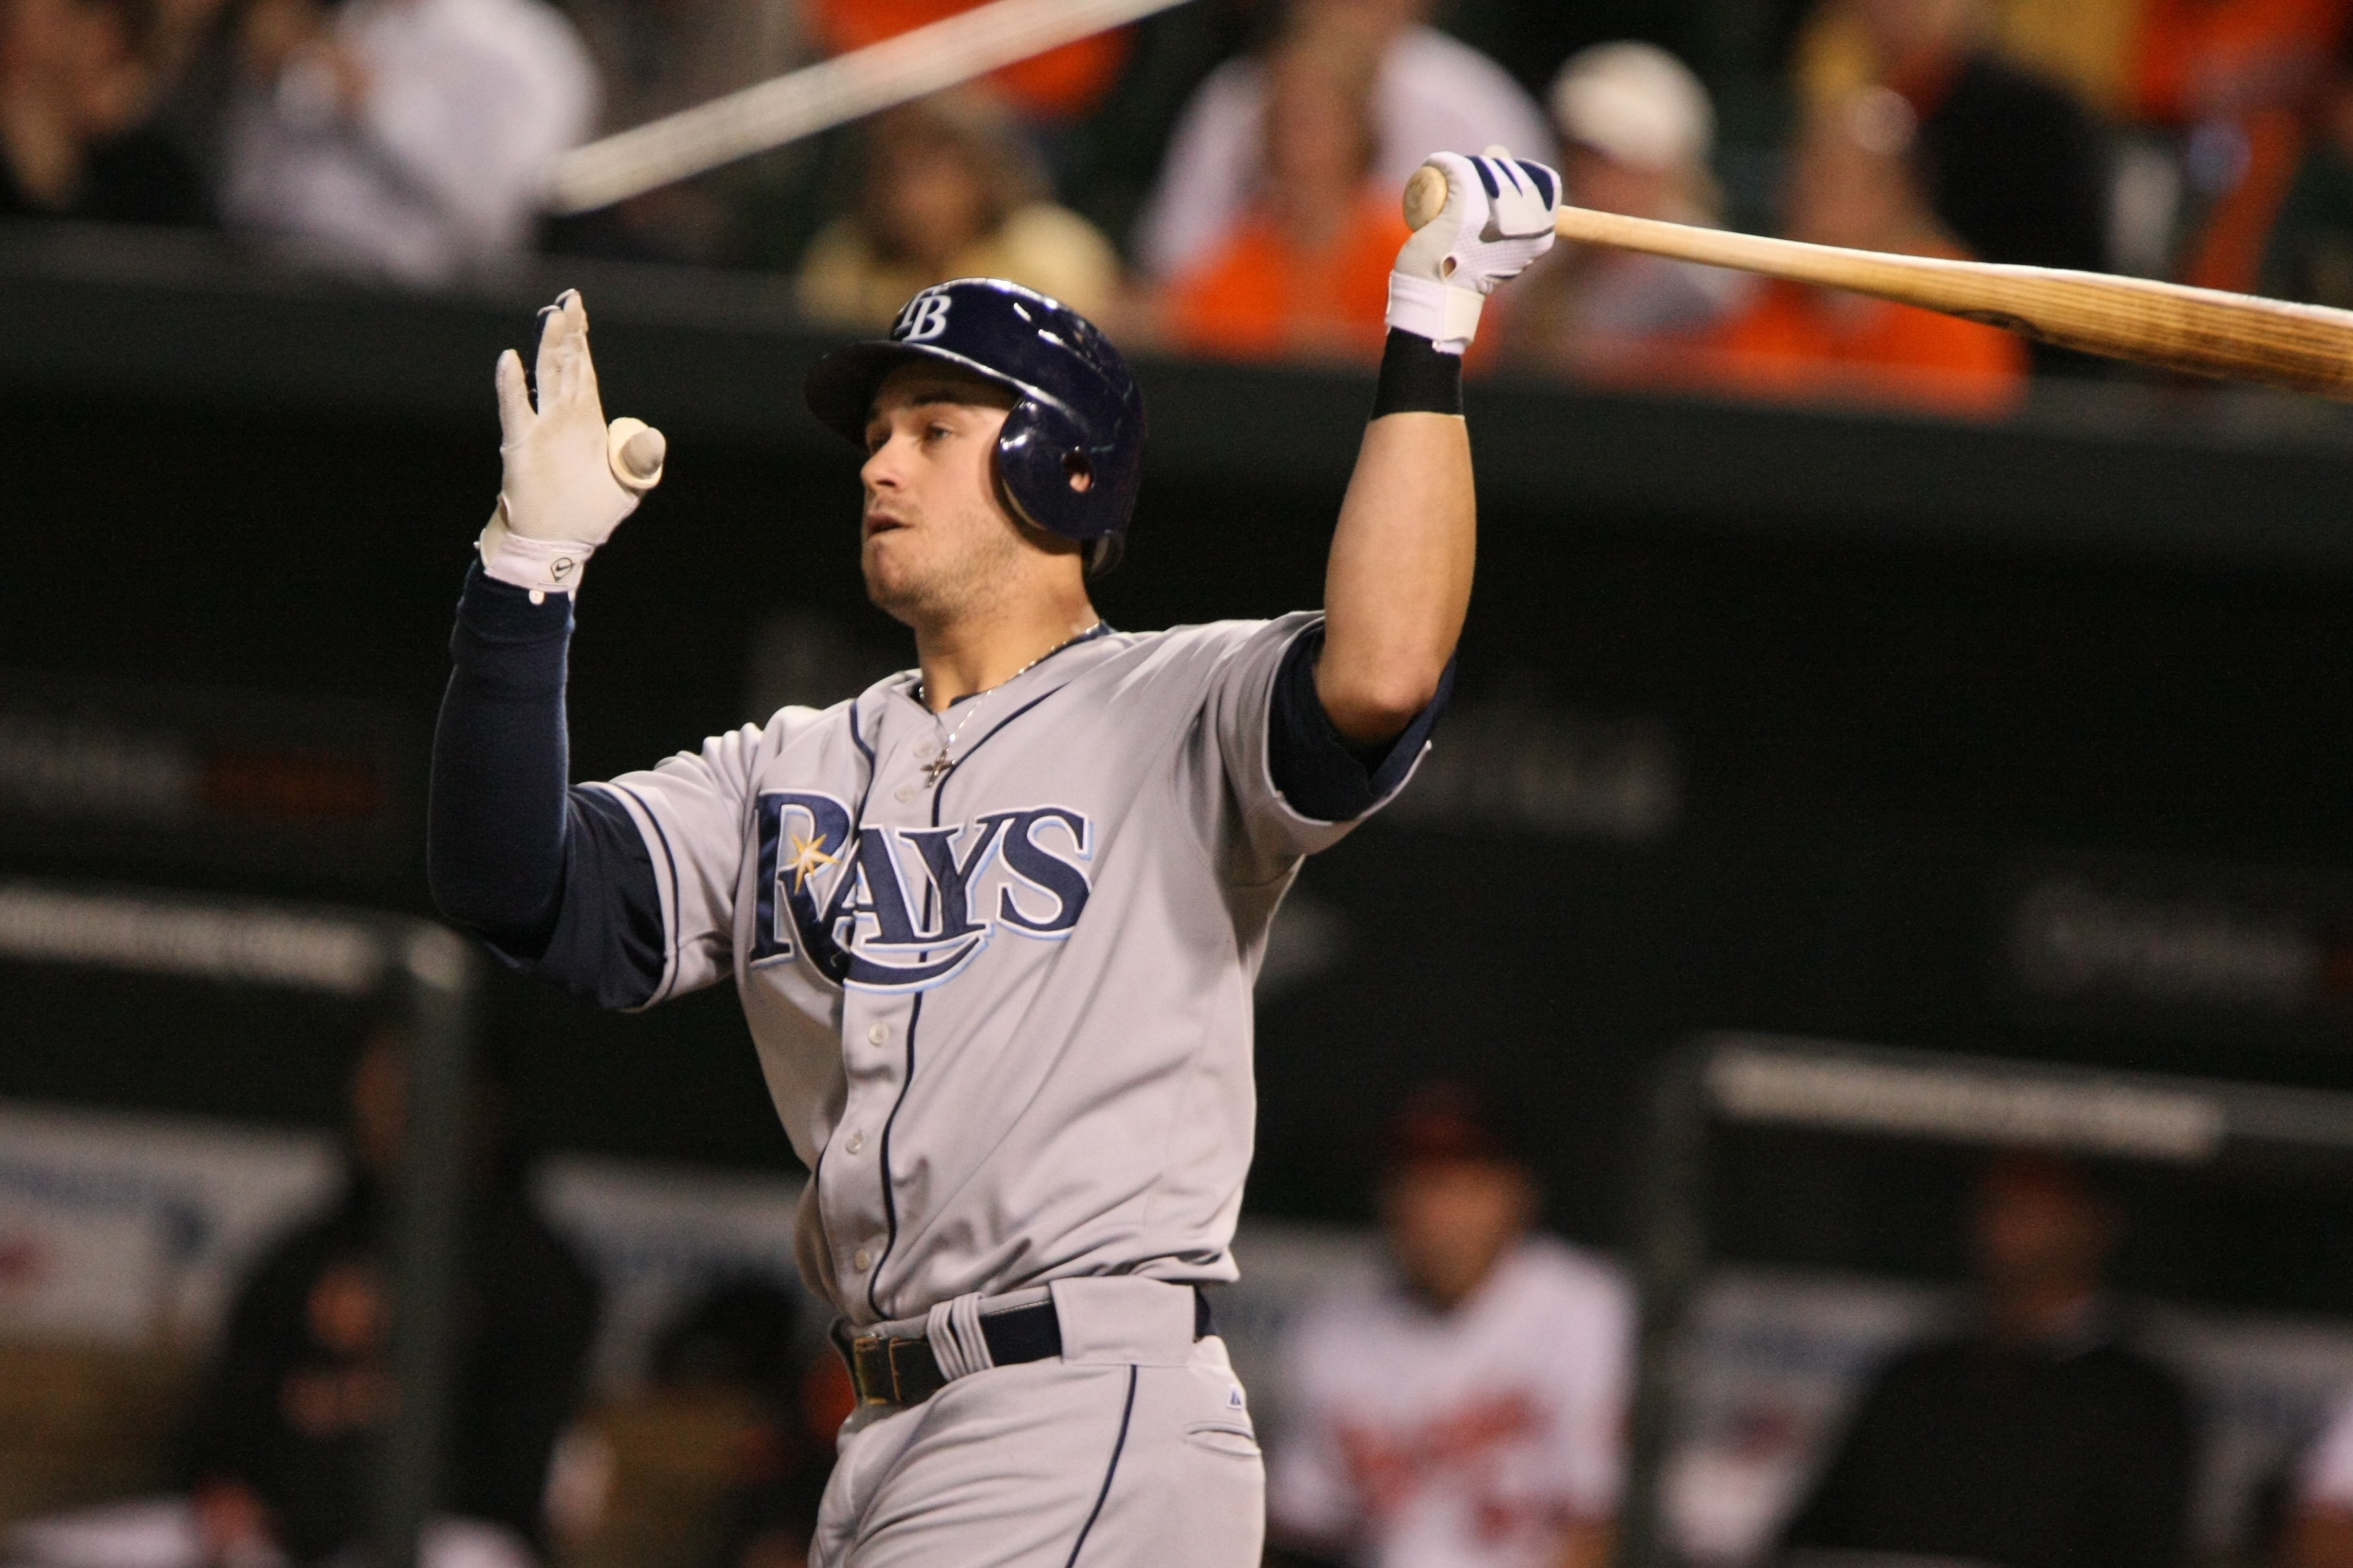 File:Evan Longoria 2009.jpg - Wikimedia Commons